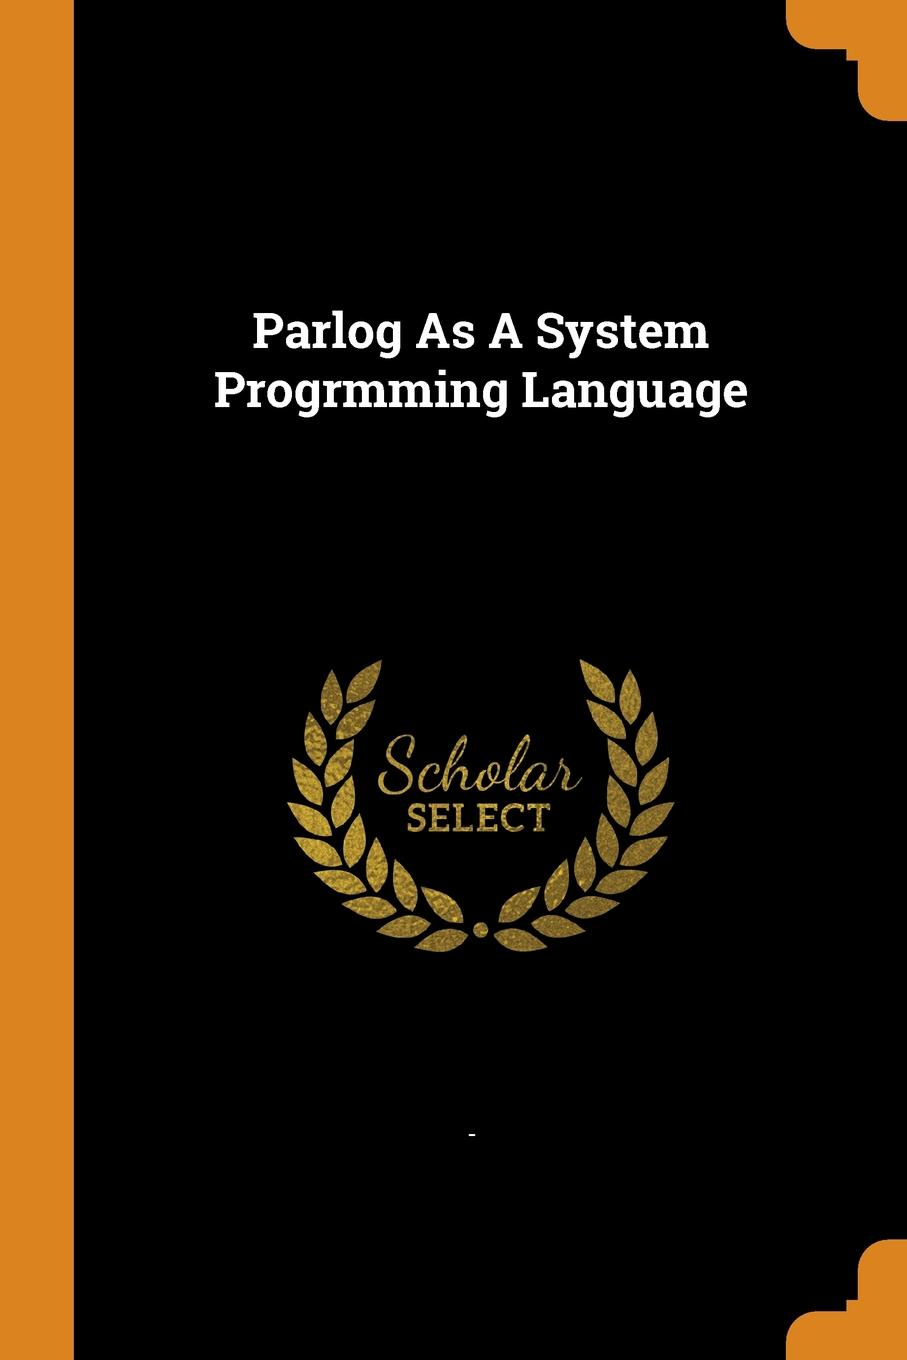 Parlog As A System Progrmming Language